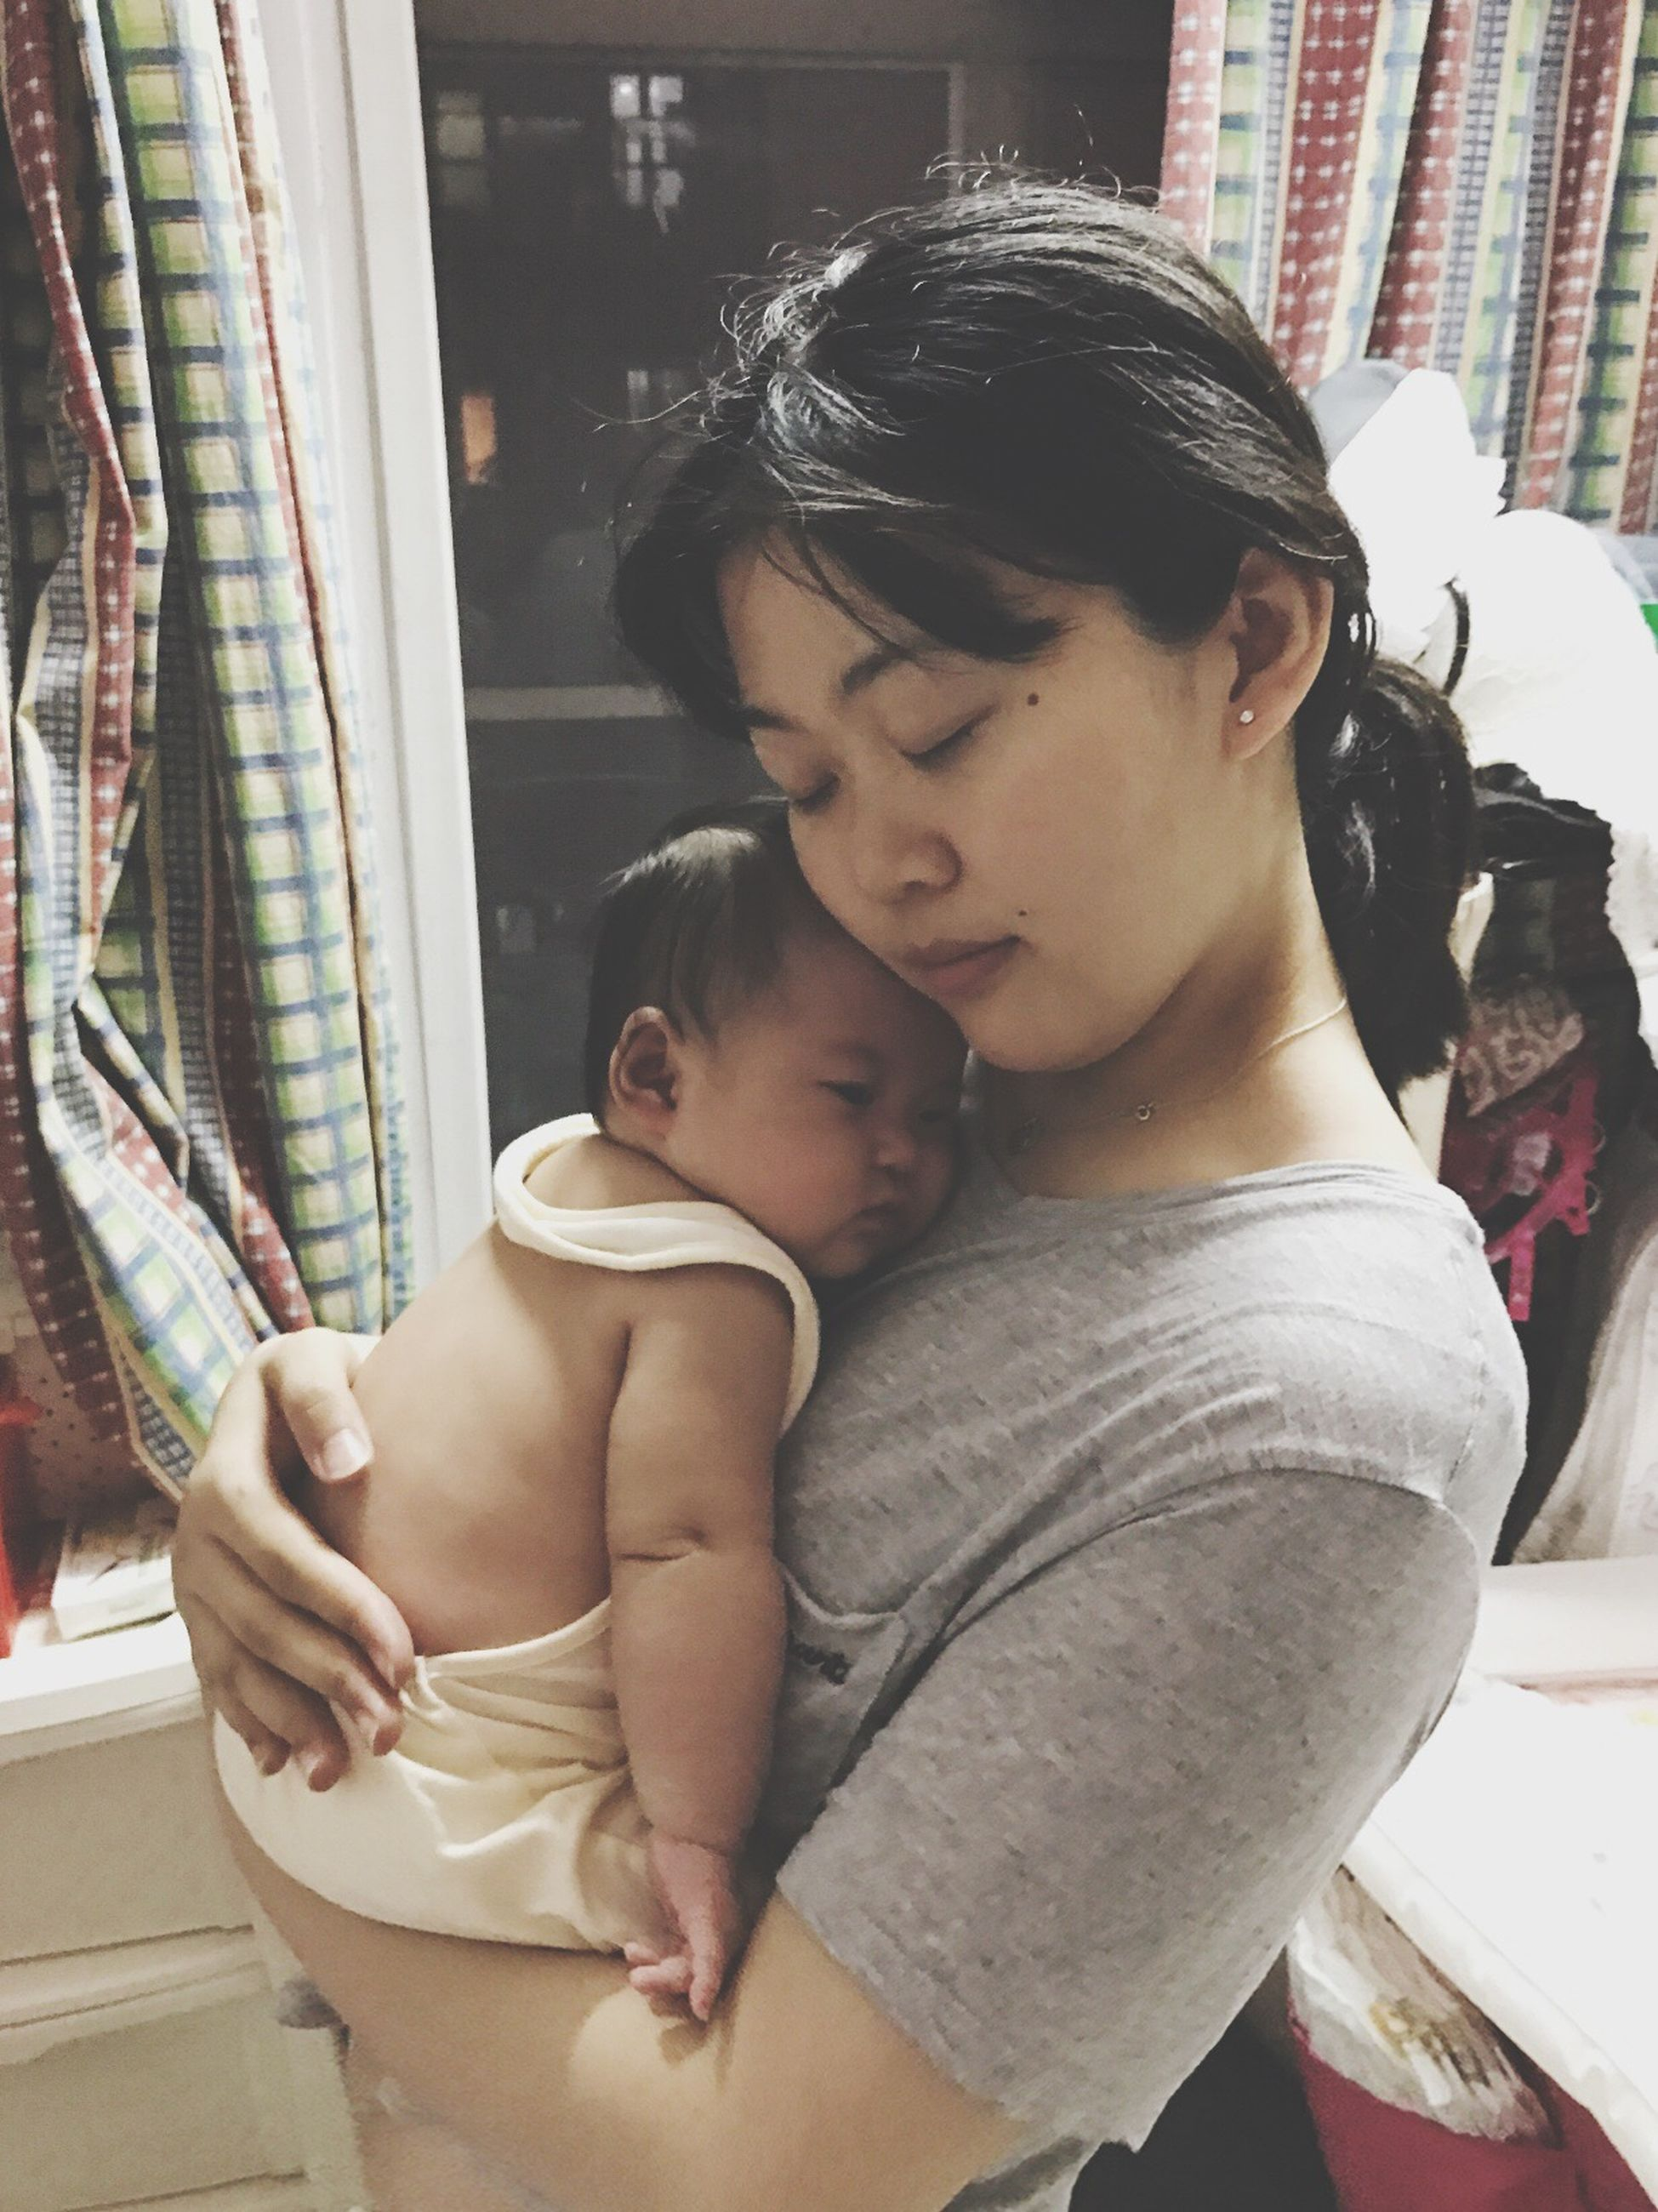 baby, real people, love, babyhood, family with one child, day, casual clothing, togetherness, indoors, childhood, lifestyles, bonding, young adult